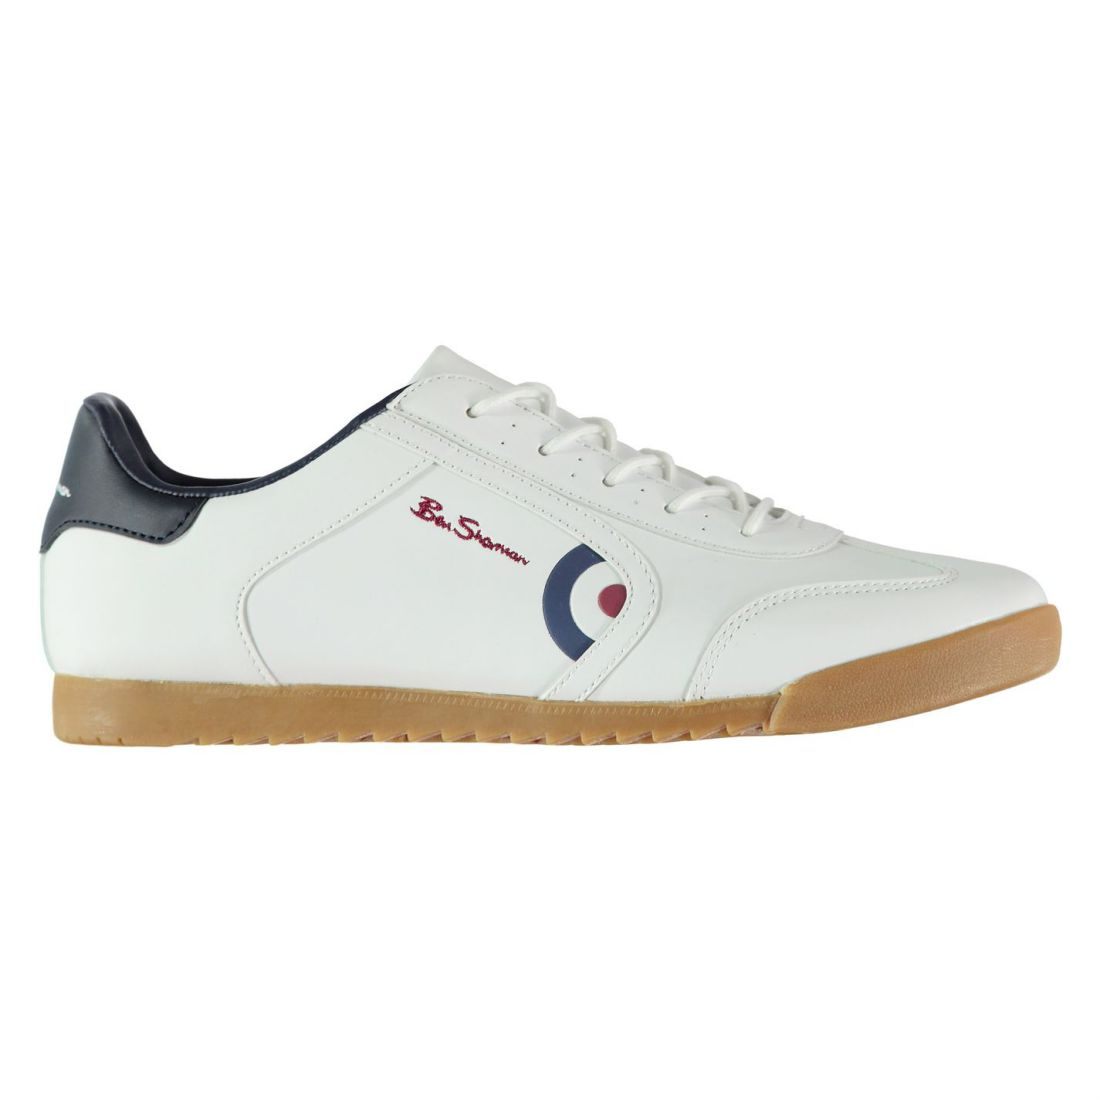 4e7ff61b Details about Ben Sherman Target Sneakers Mens Gents Low Laces Fastened  Padded Ankle Collar